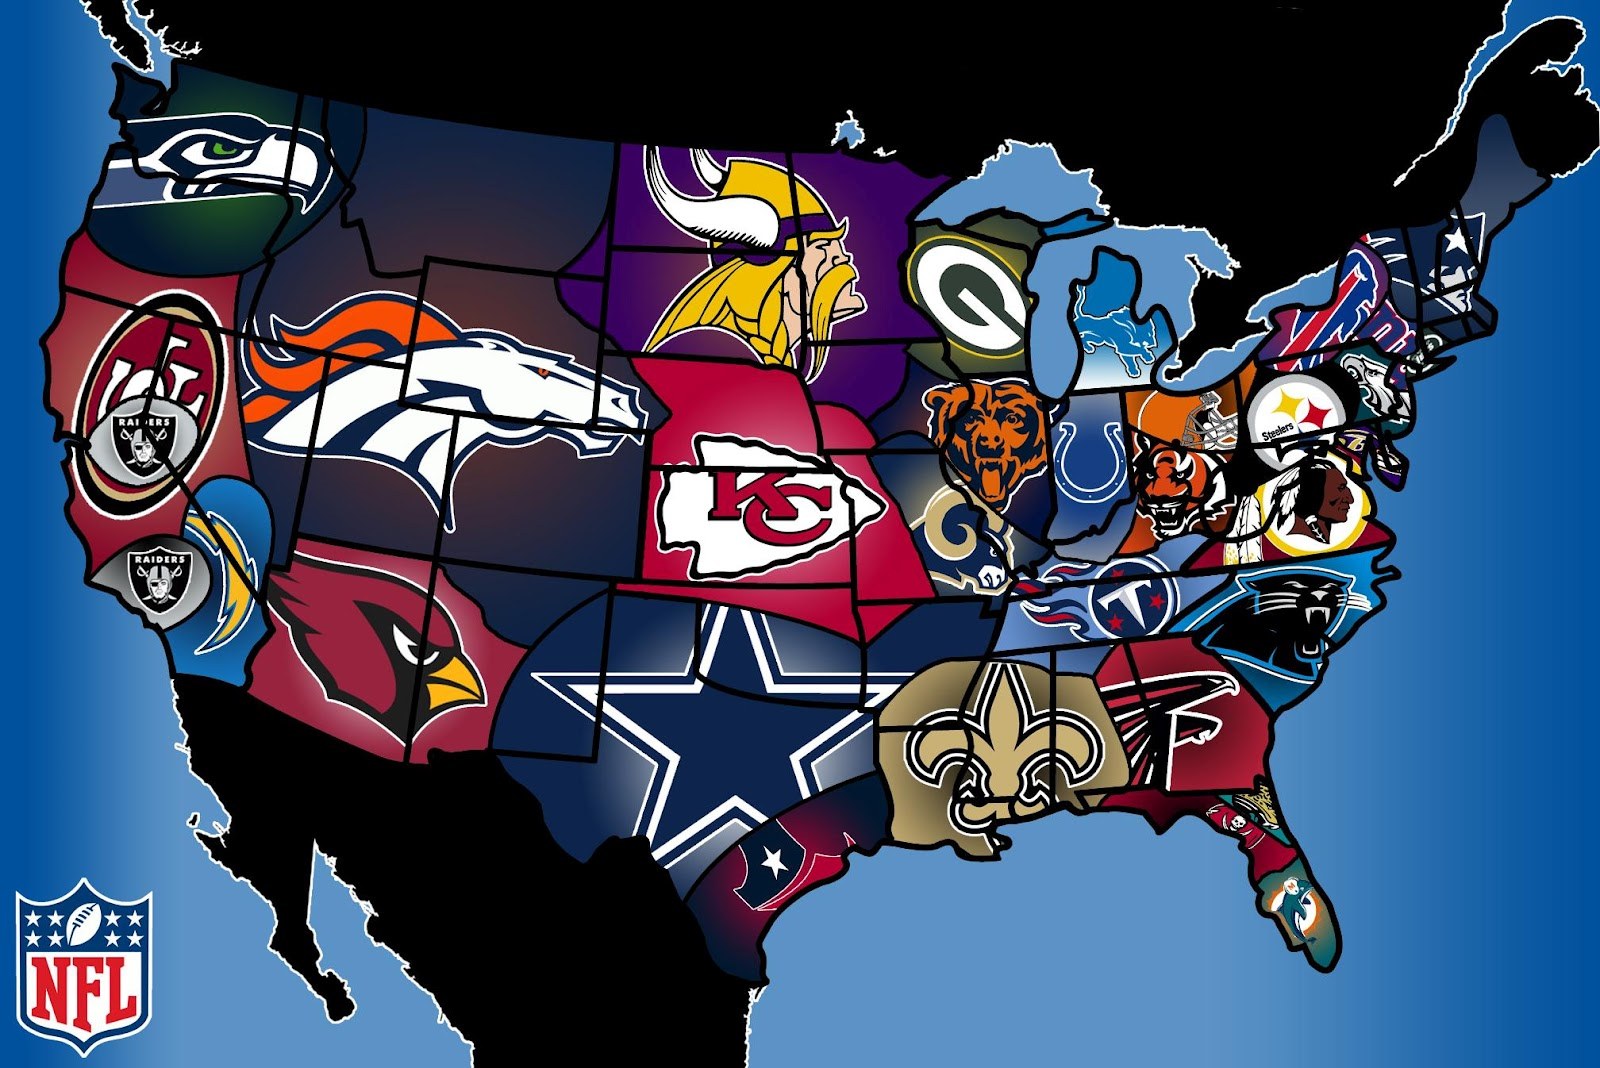 Wallpaper Of The Day: NFL Fan Map - Common Sense Evaluation